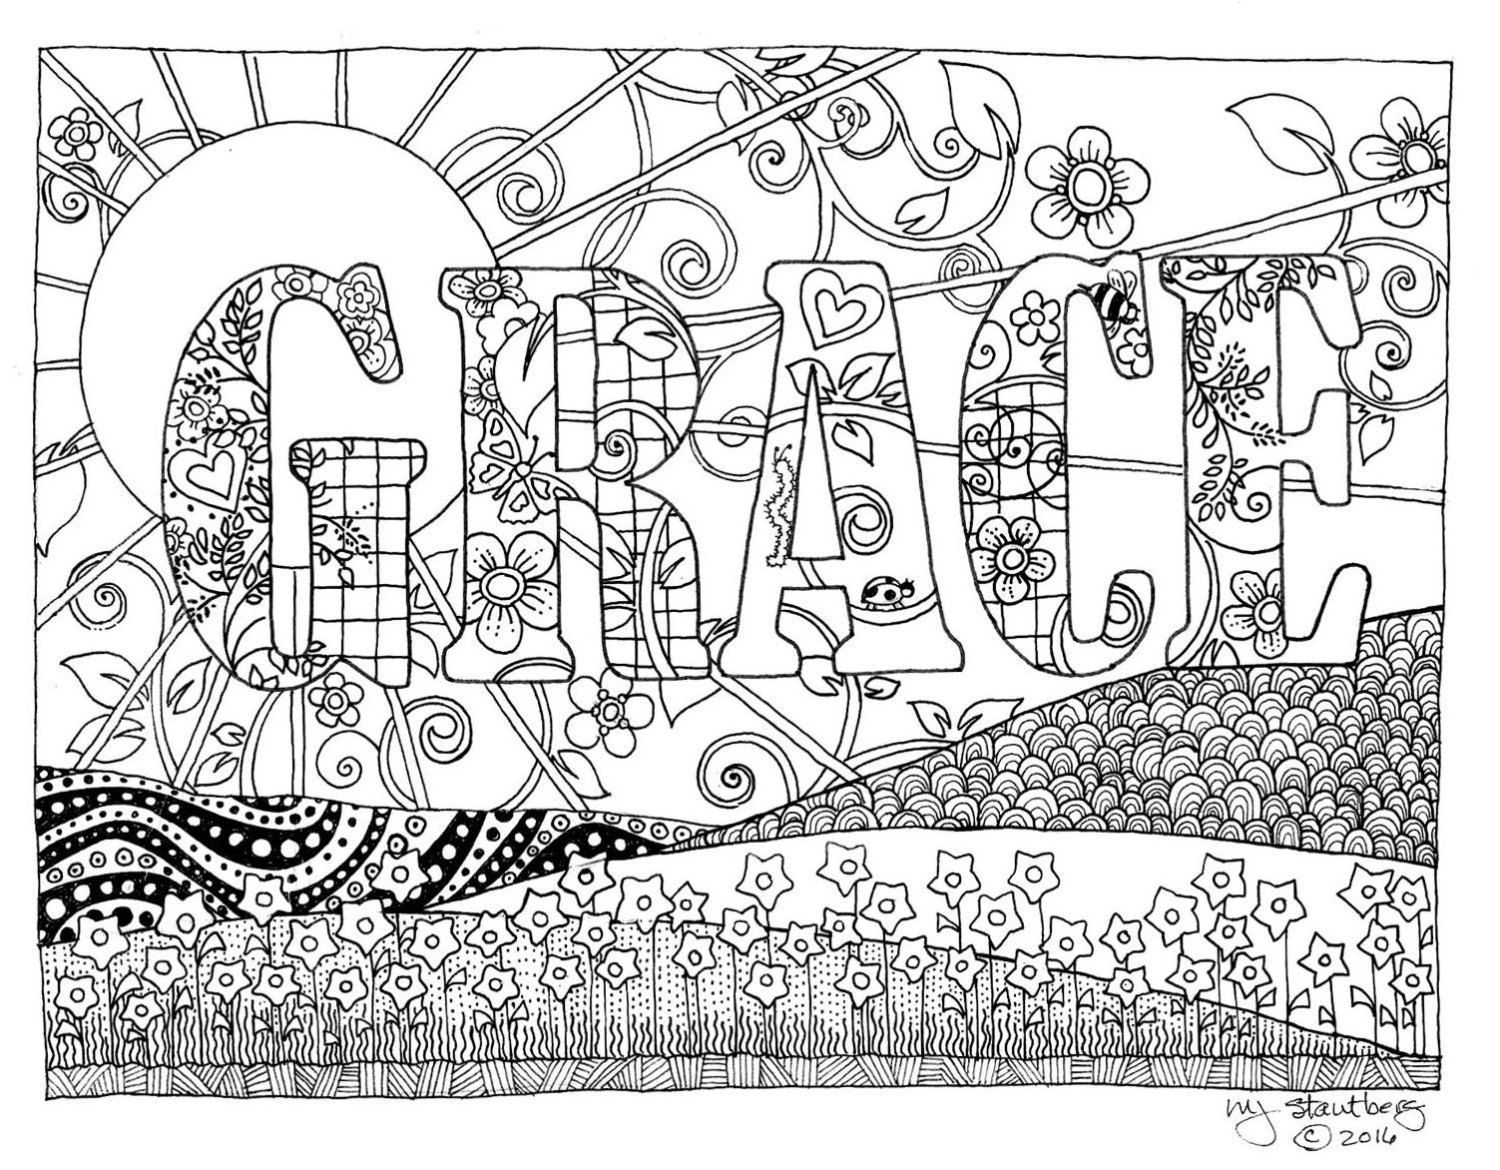 Coloring Page Hand Drawn Grace Downloadable Coloring Pages How To Draw Hands Star Coloring Pages